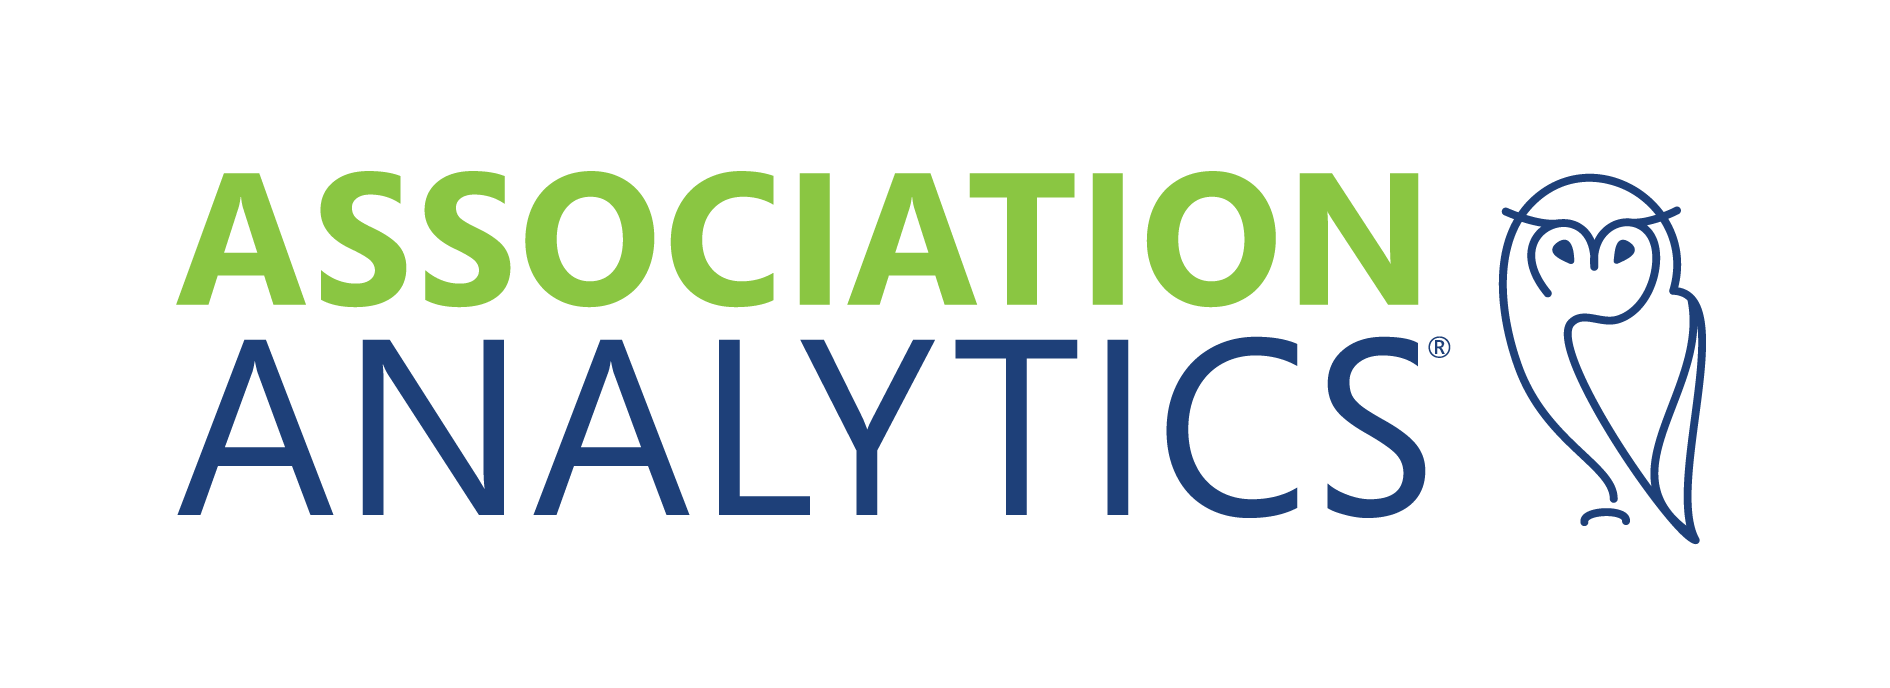 Association Analytics - ORI Partner